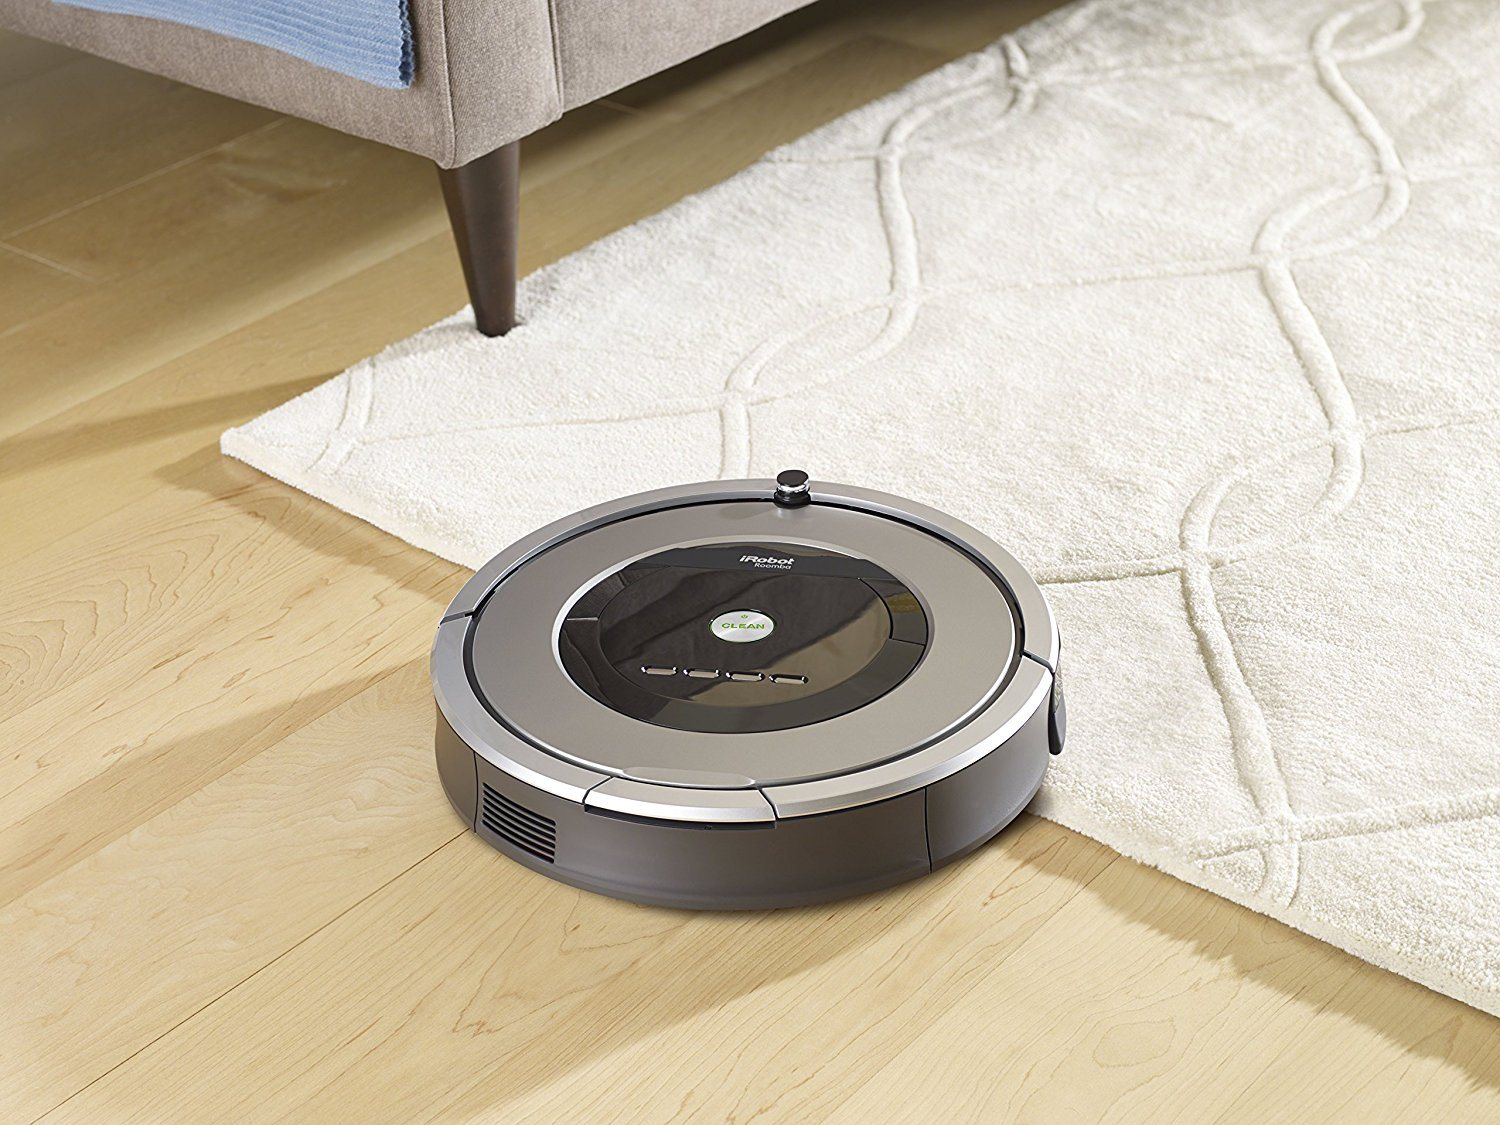 roomba 860 vacuum cleaner pros and cons